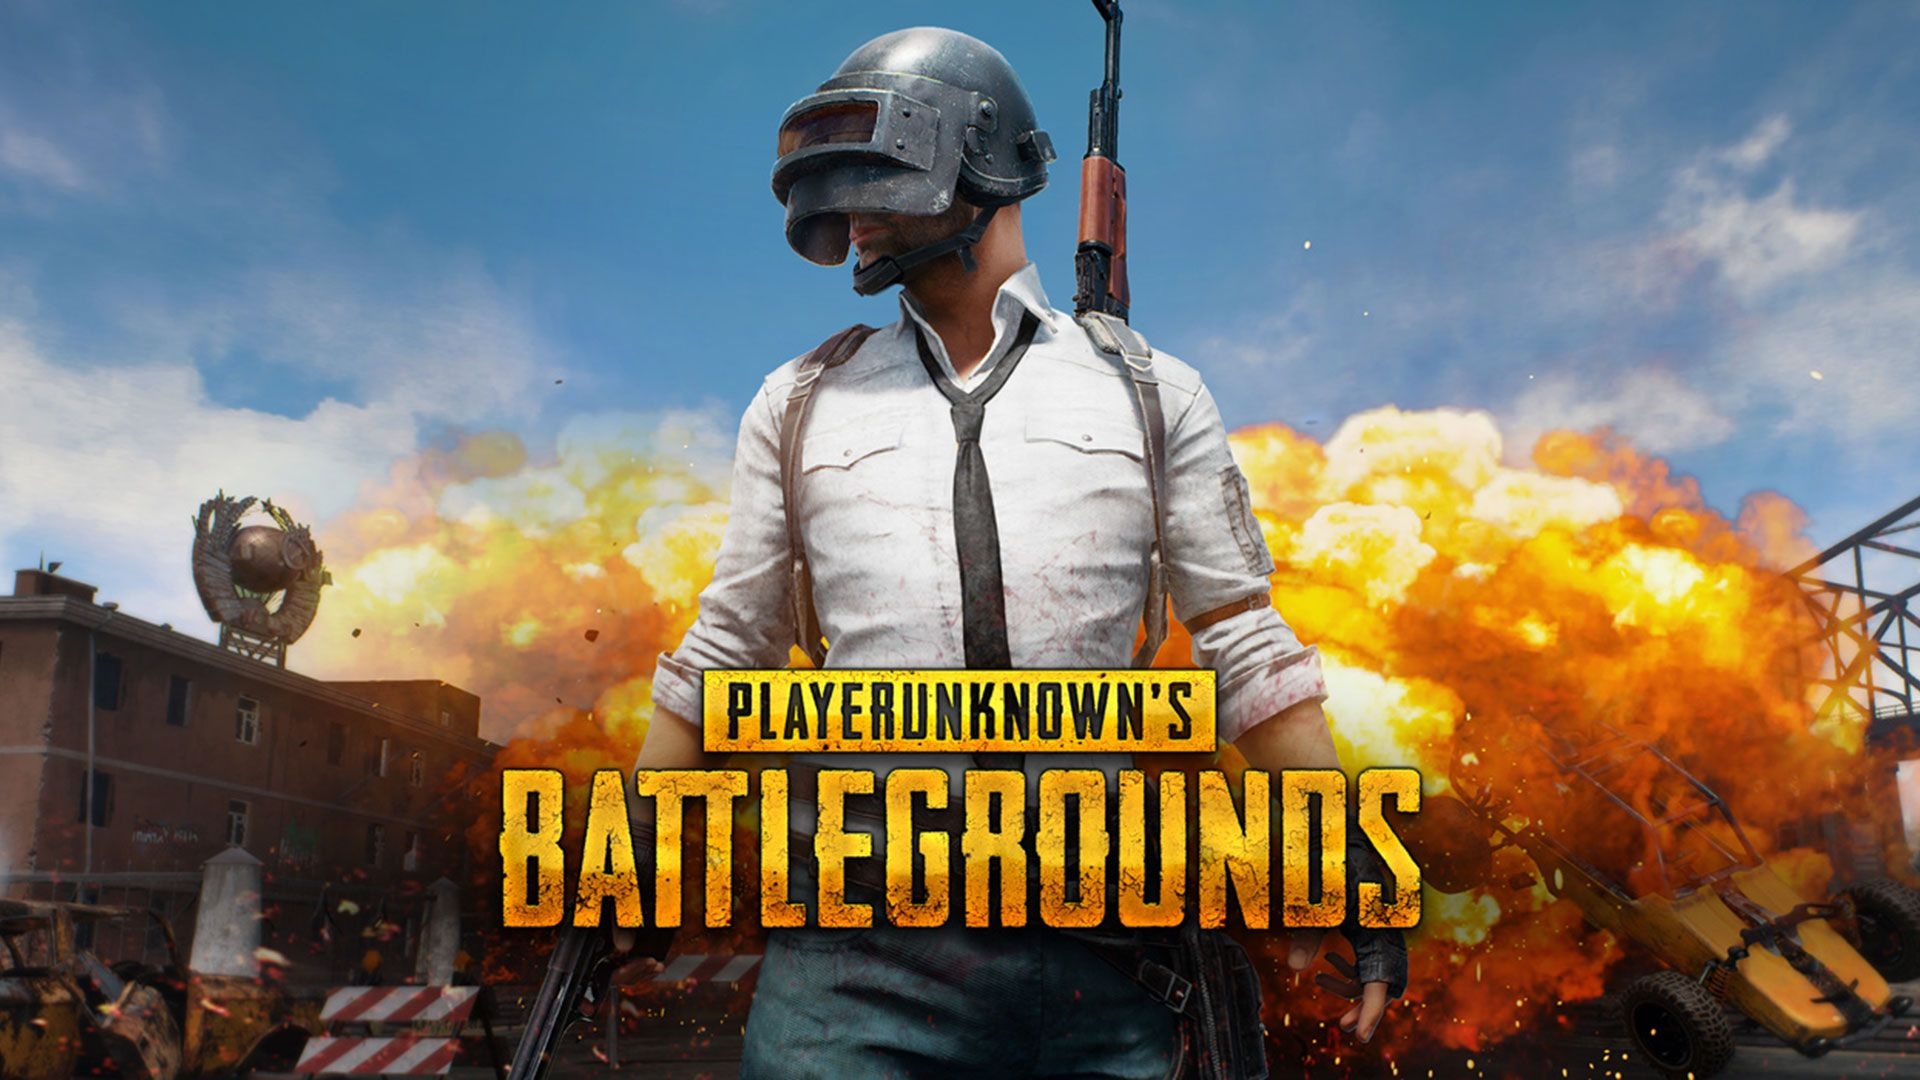 Pubg Hd For Pc: Pubg Wallpapers Full Hd On Wallpaper 1080p HD